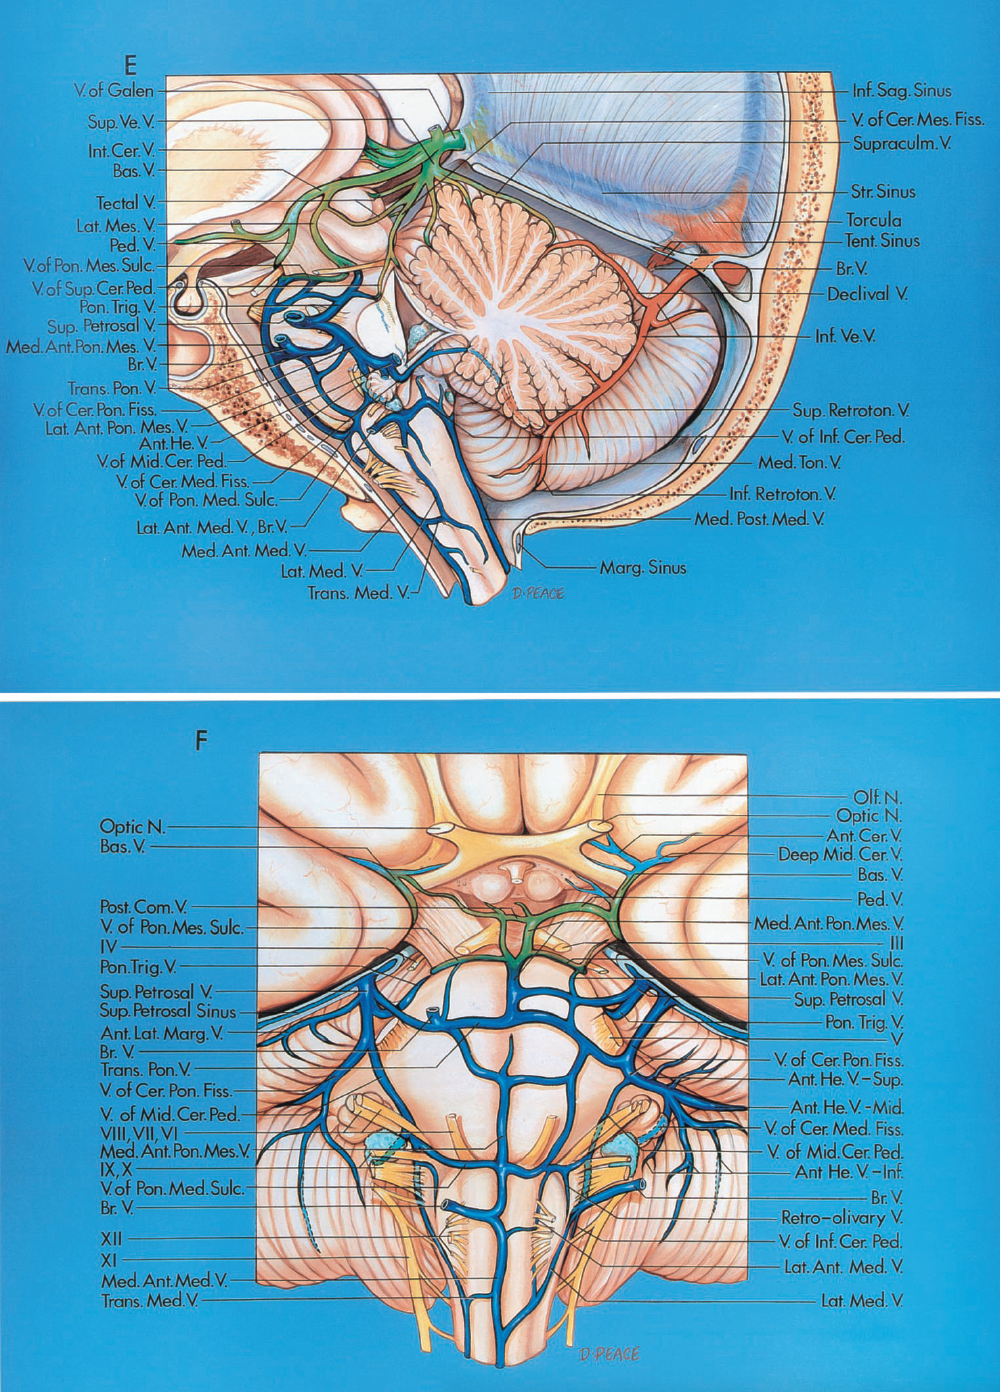 FIGURE 3.3. E and F. Veins of the posterior fossa. E, midsagittal section of cerebellum and fourth ventricle. Left lateral view.